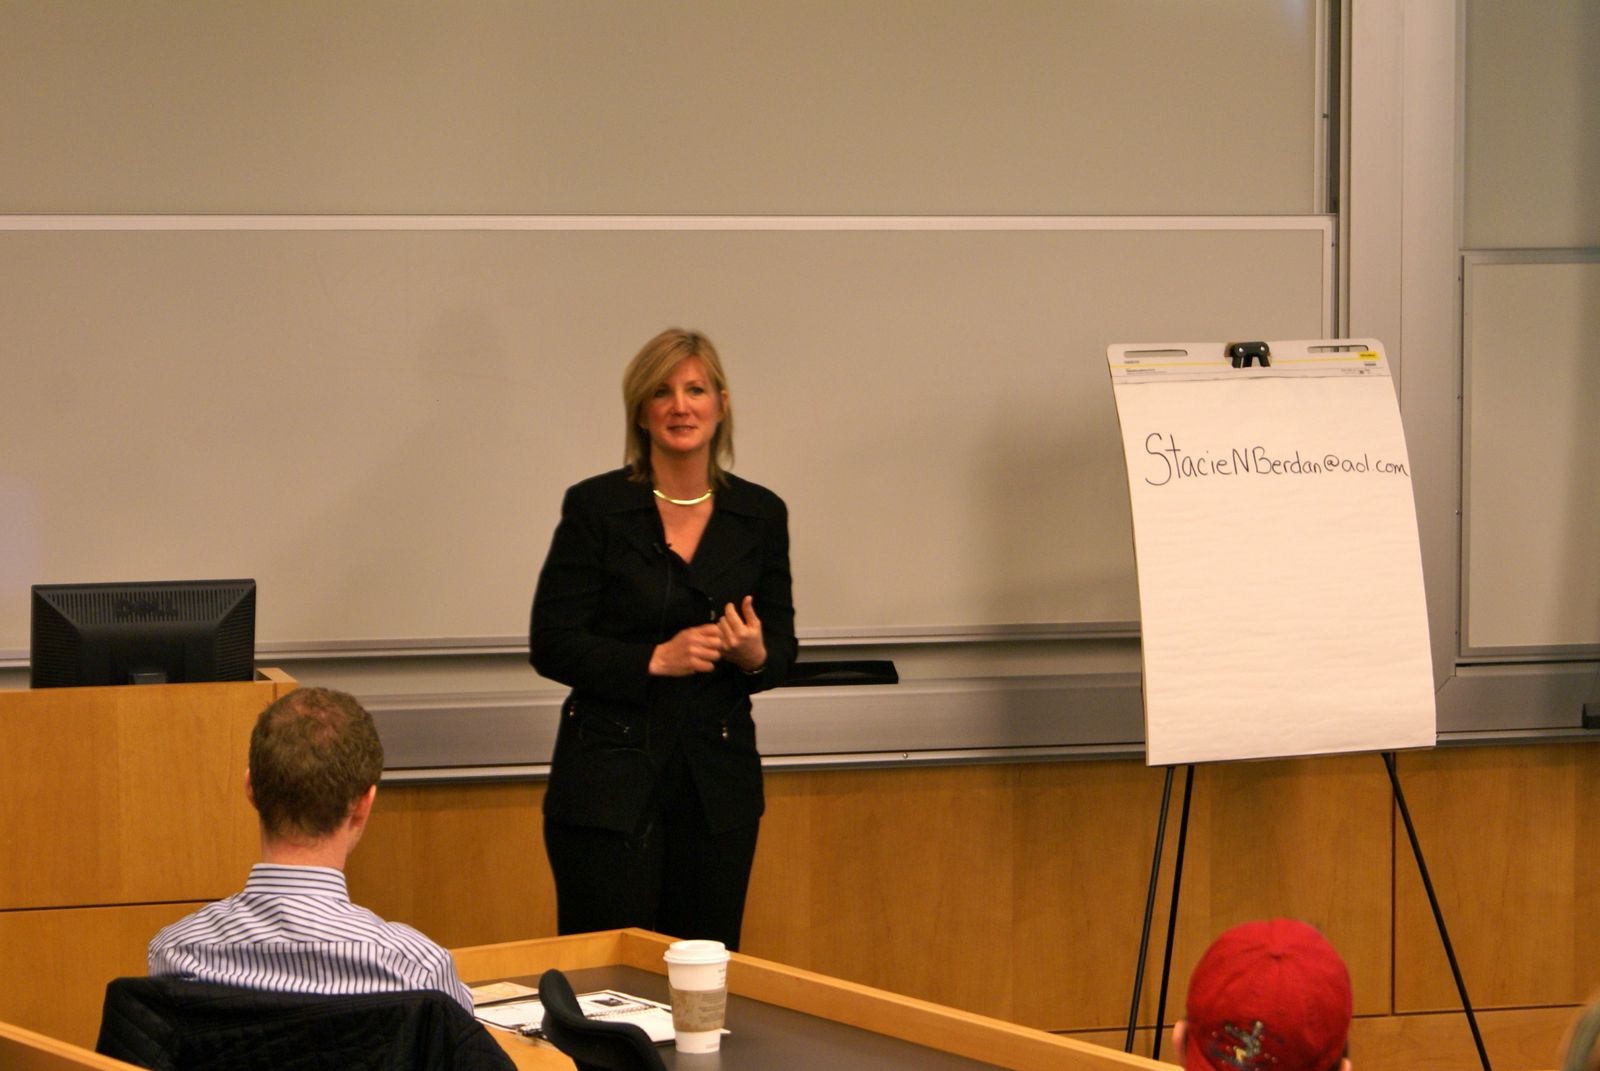 Stacie Berdan advises students on how to launch an international career.